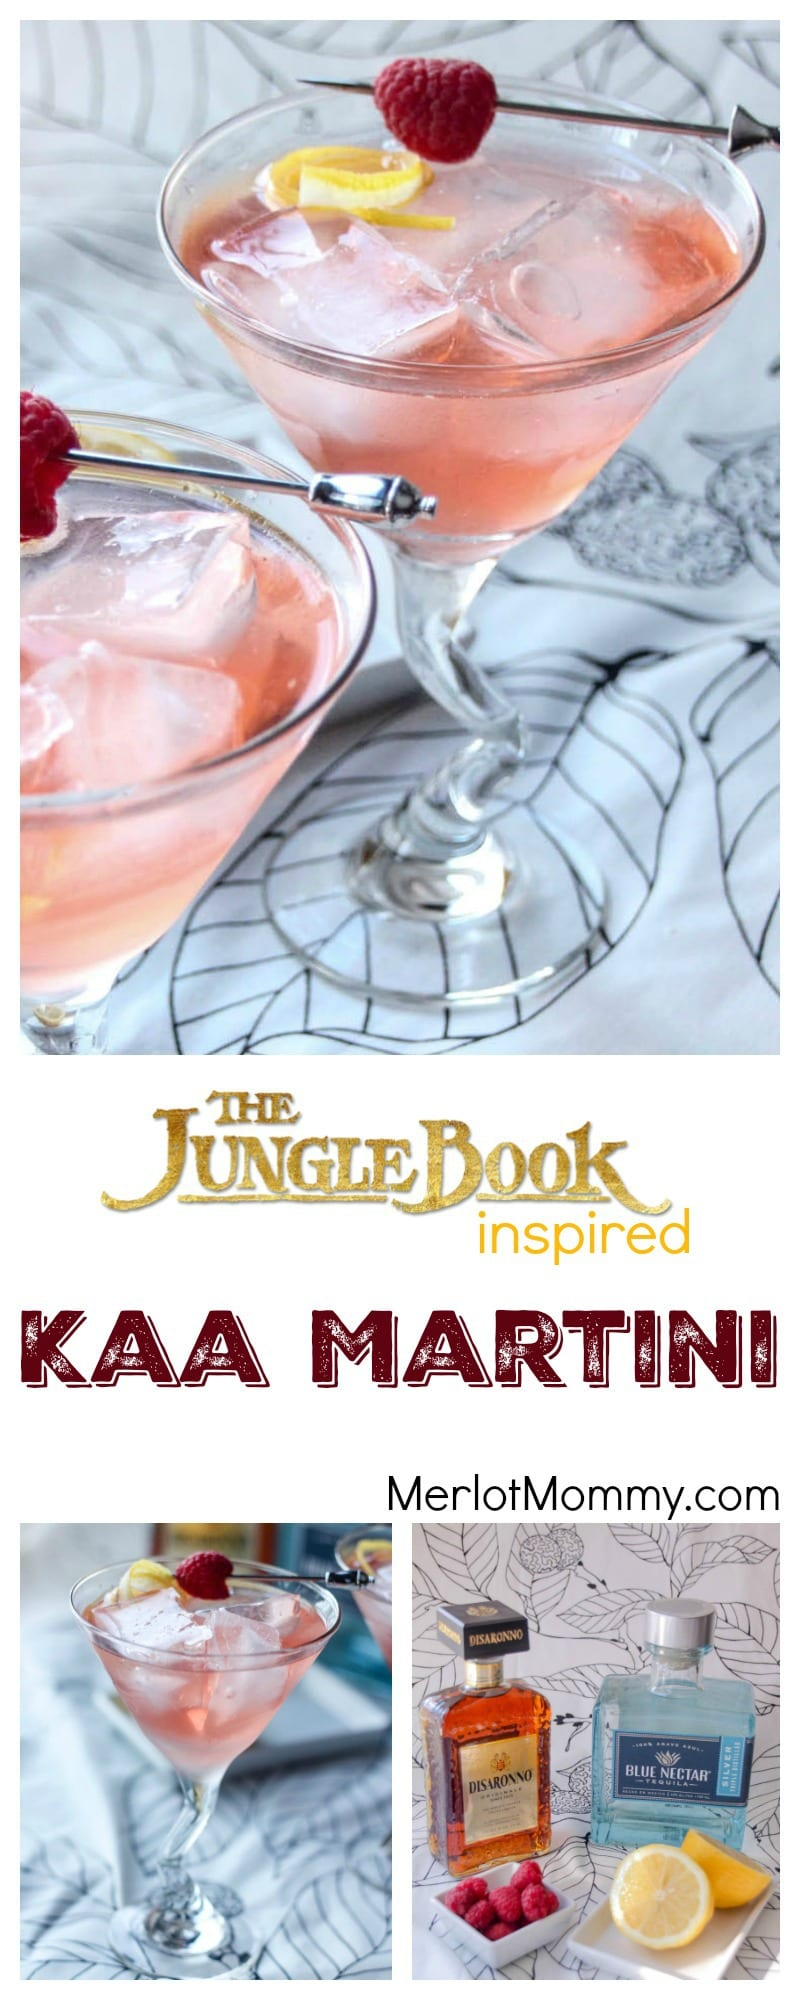 Kaa Martini: Disney's Jungle Book Inspired Cocktail